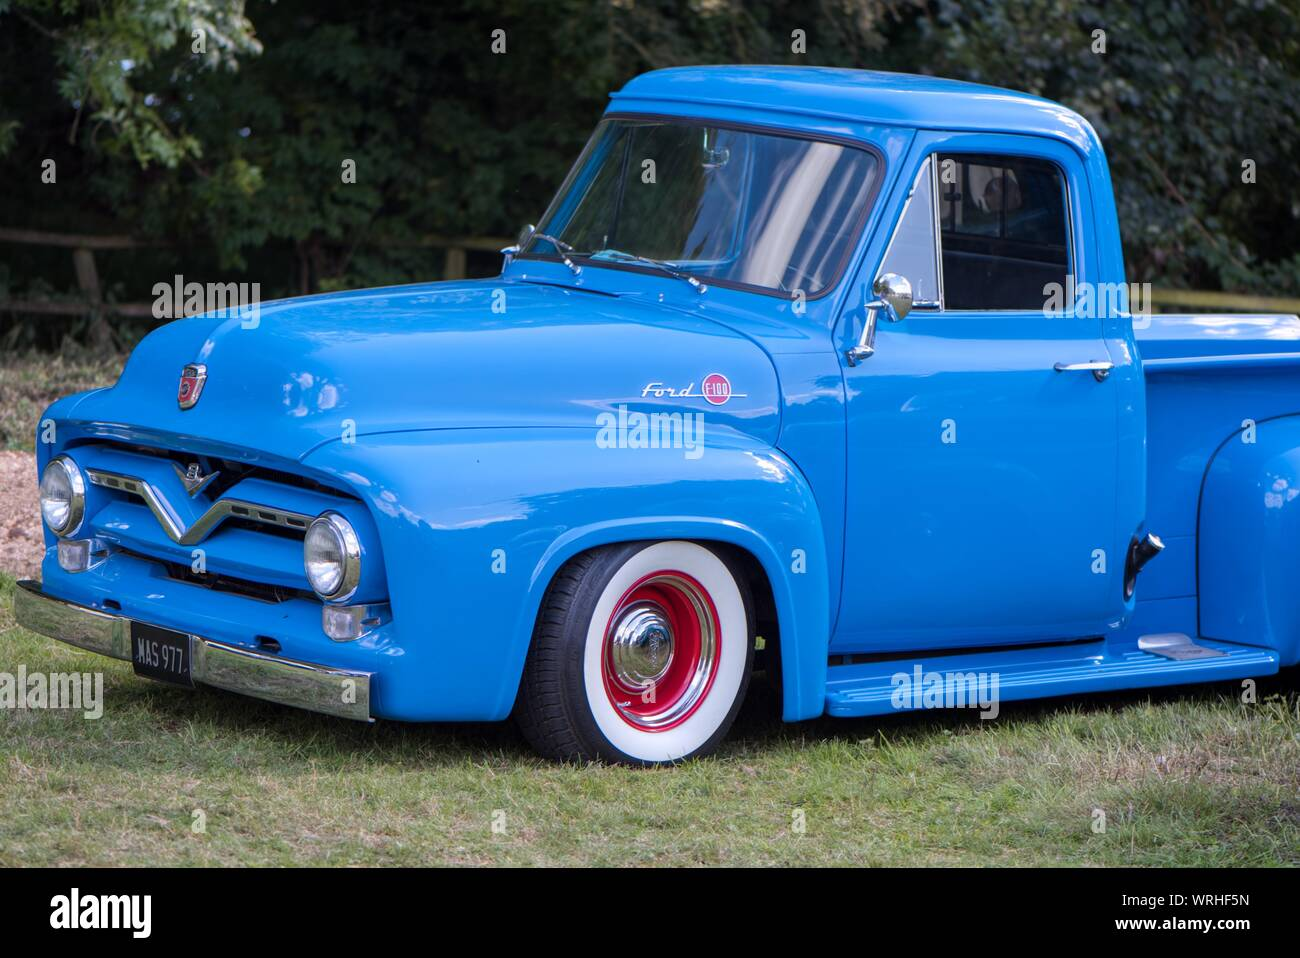 Old Ford Cars High Resolution Stock Photography And Images Alamy